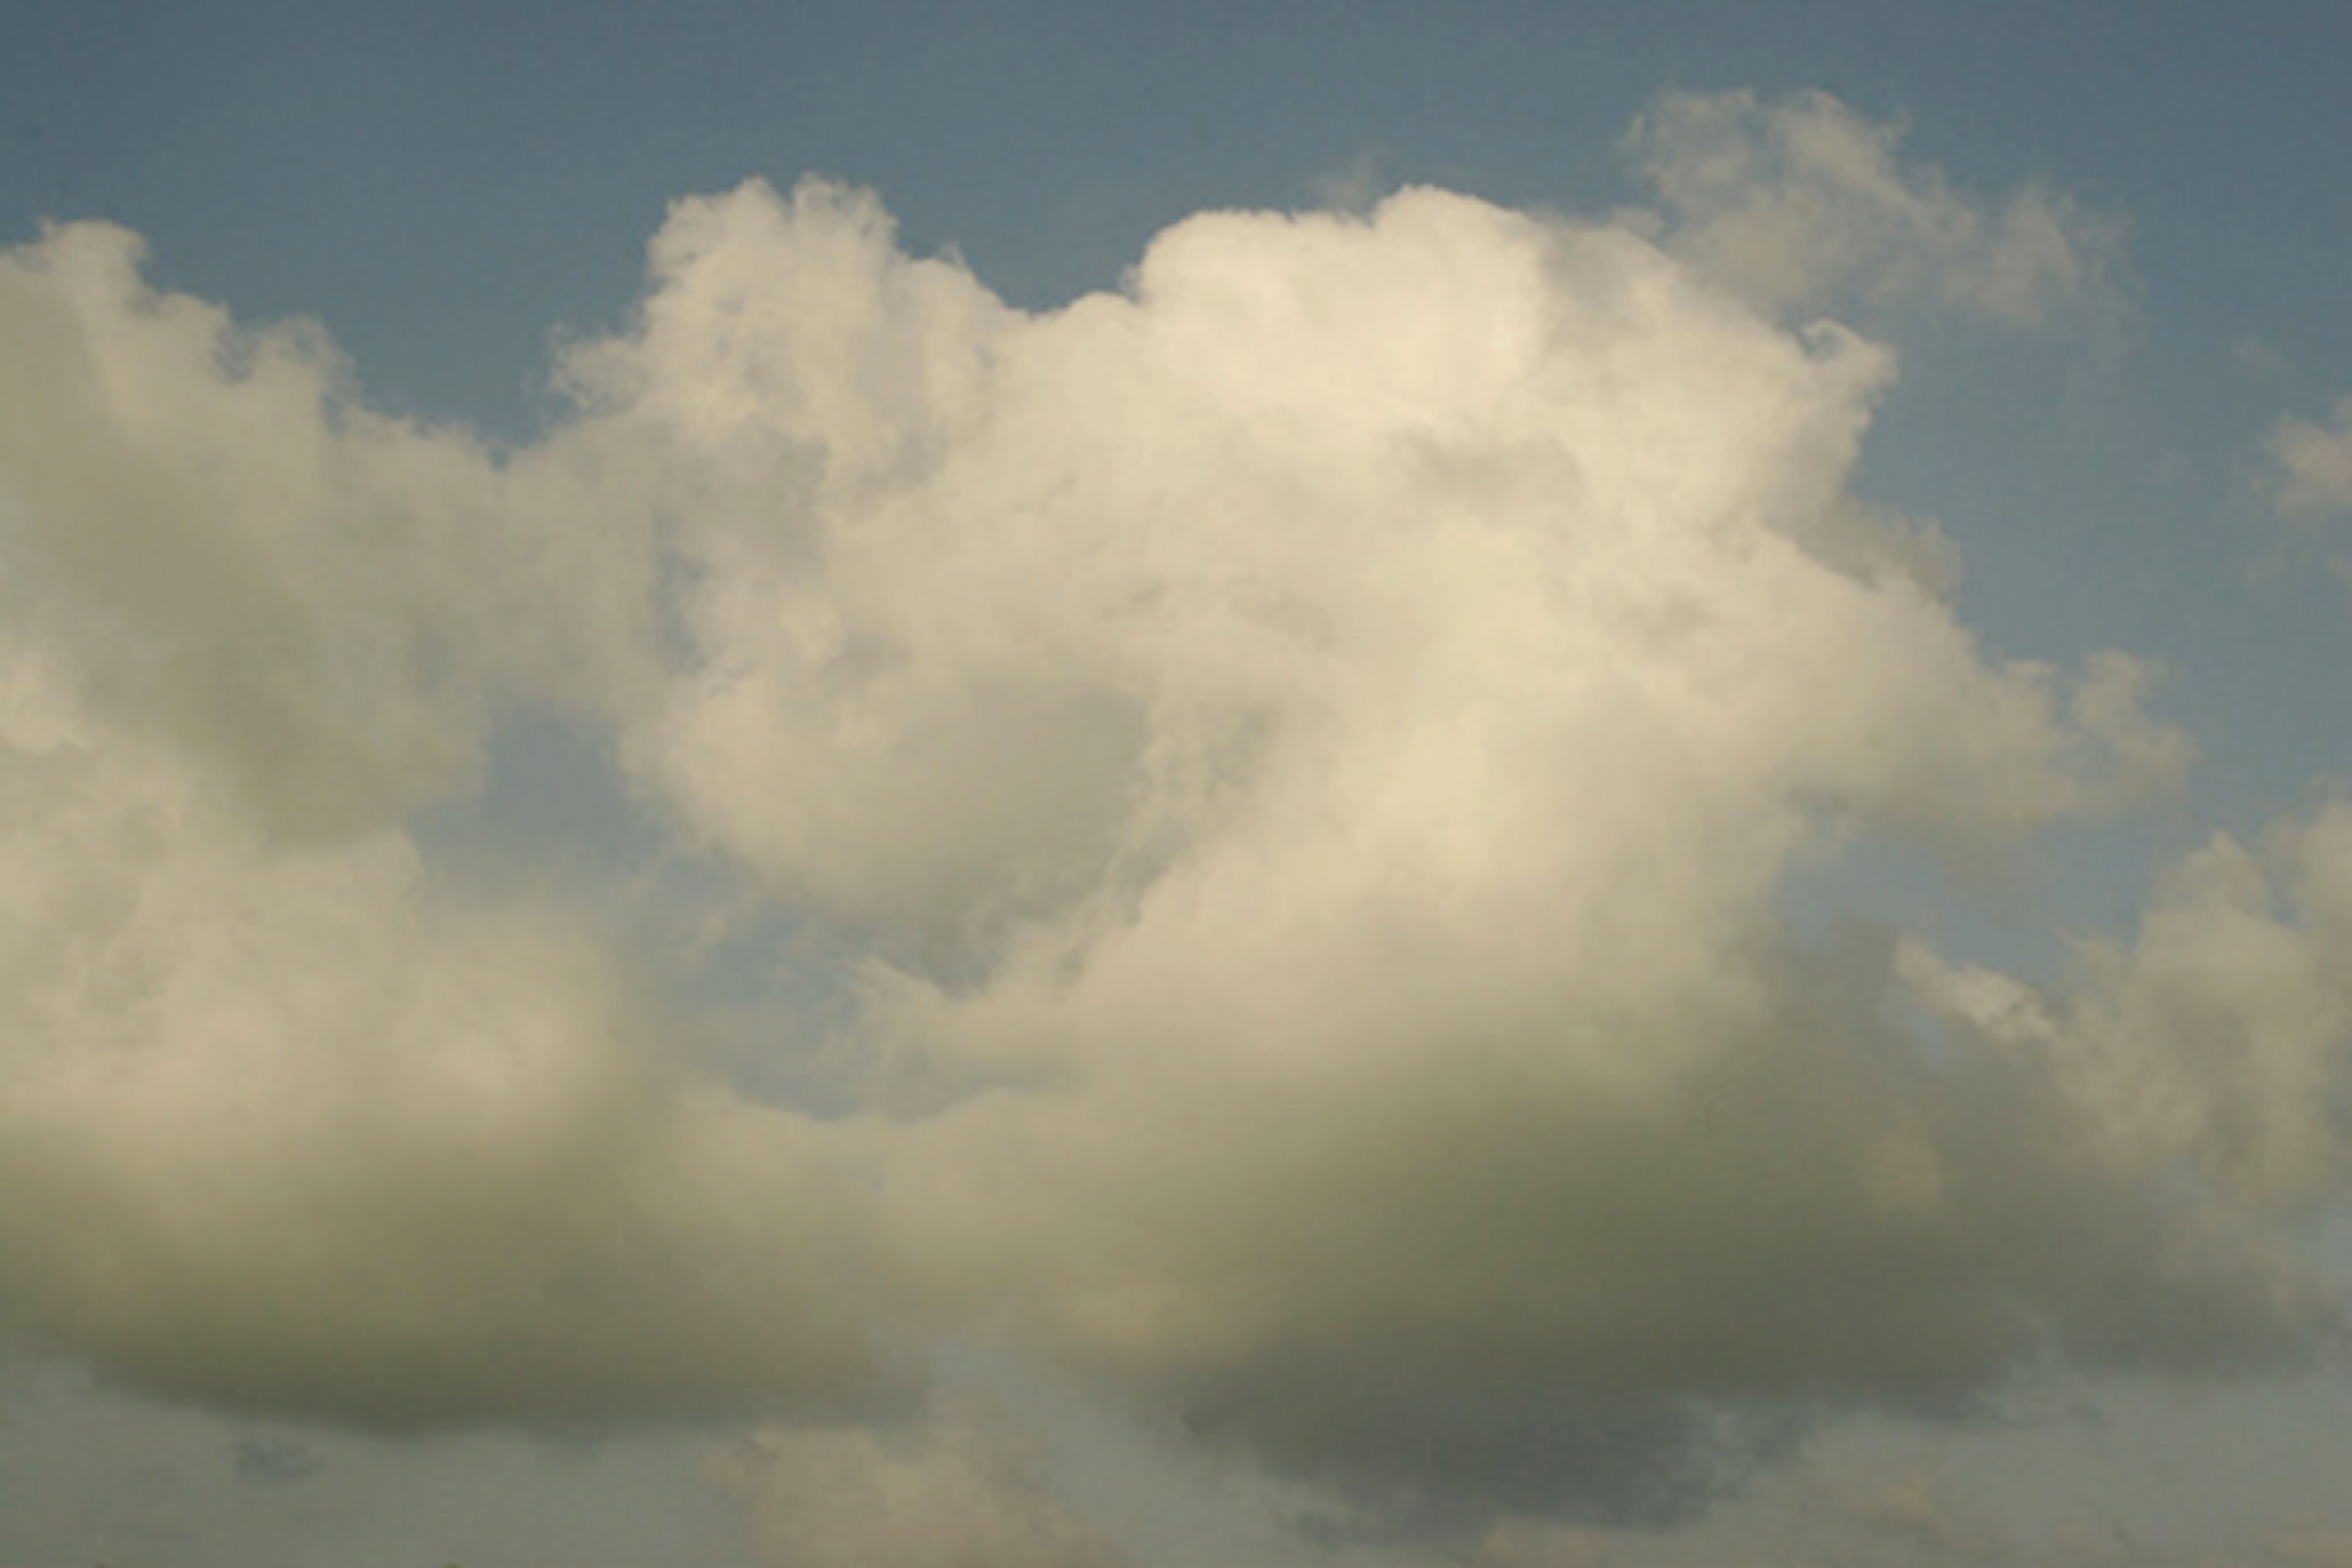 """Clouds above in the skies of Belize. Put it on a wall in your house as a conversation piece. 11"""" x 14"""" original photograph Find it in Etsy: G2PixLA"""